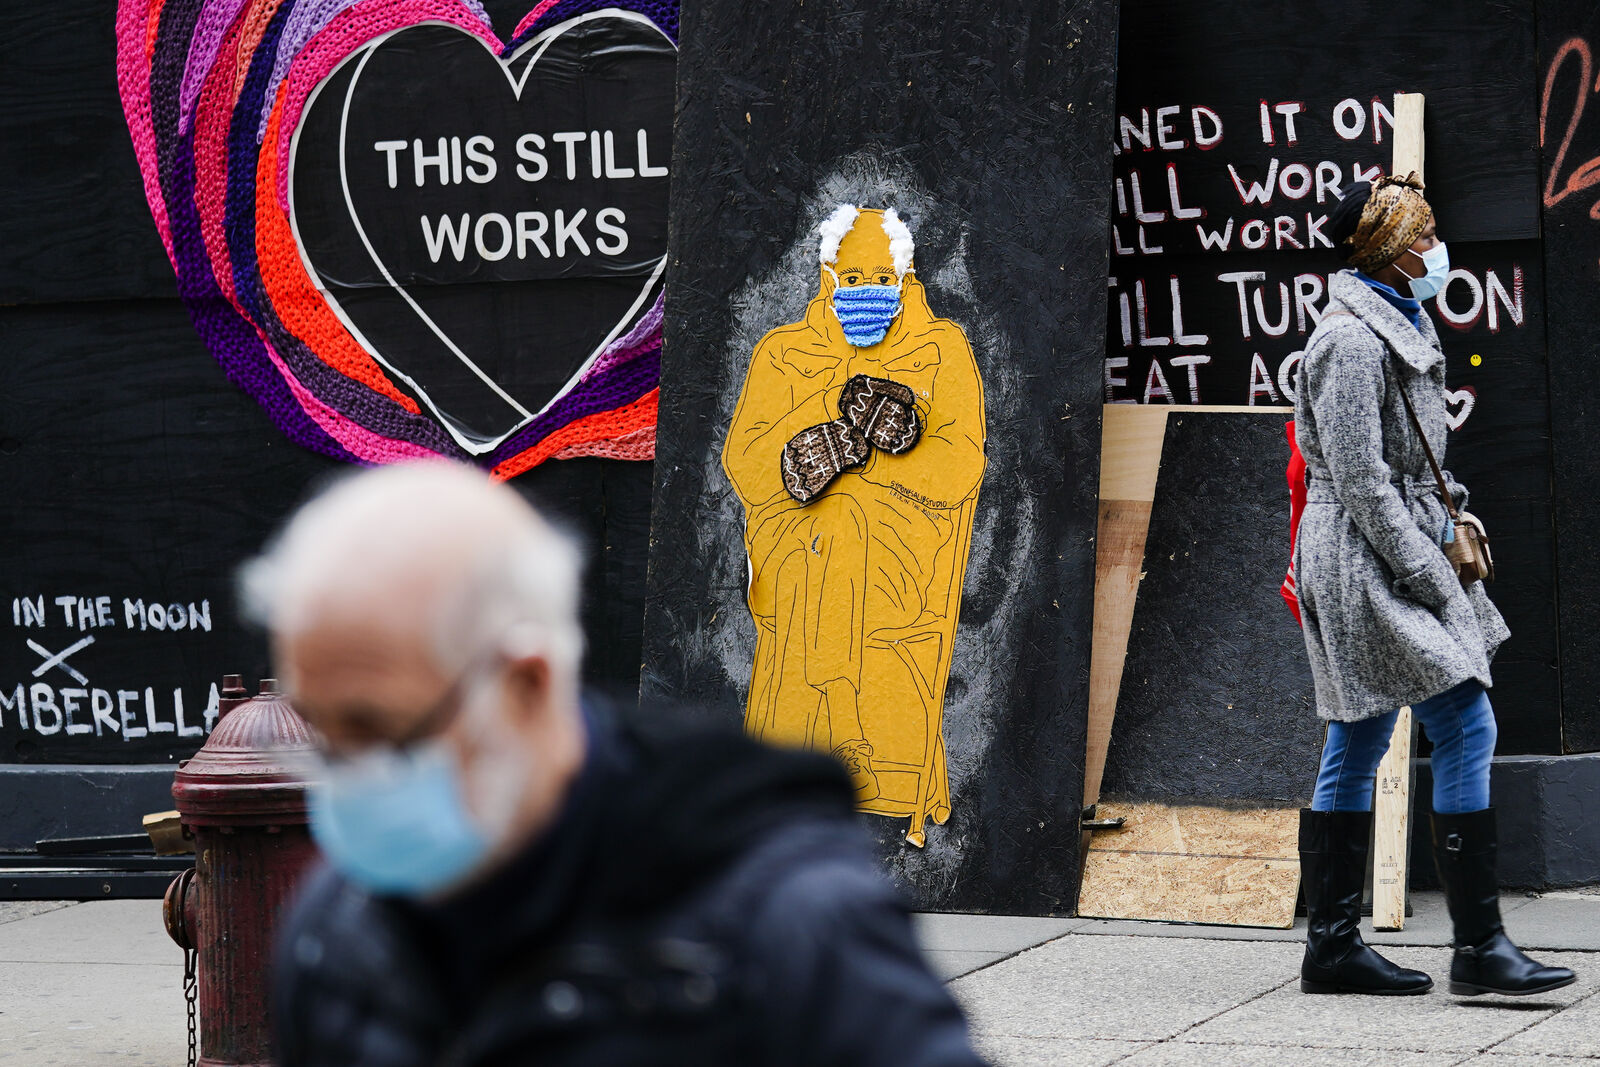 People wearing face masks as a precaution against the coronavirus walk past a depiction of Sen. Bernie Sanders, I-Vt., in Philadelphia, Monday, Jan. 25, 2021. (AP Photo/Matt Rourke)